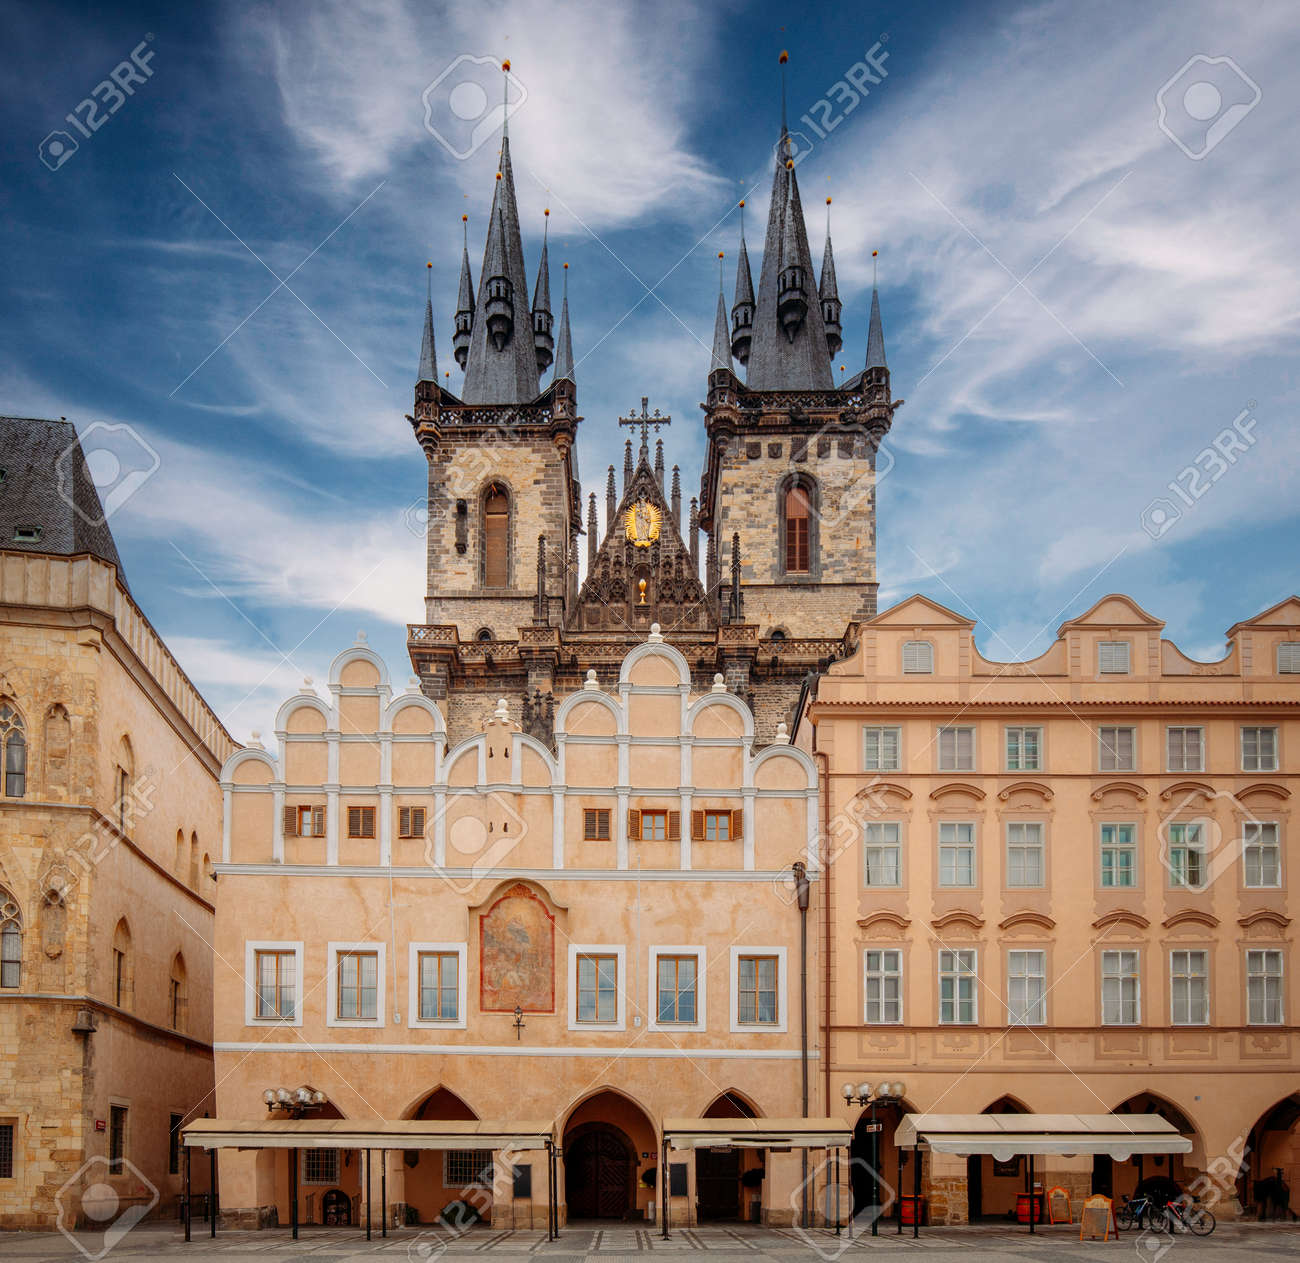 Church of Our Lady before Týn, Prague, Czech Republic, Europe, during sunny day with blue sky - 161619256